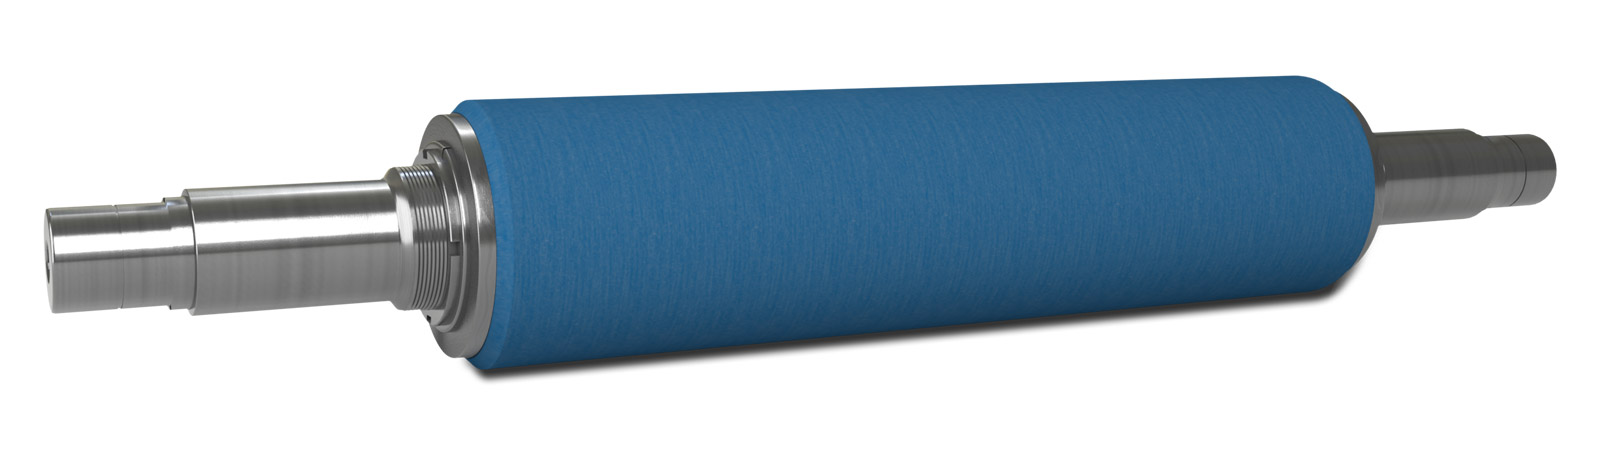 Perspective view of the NCCM<sup>®</sup> NS nonwoven roll on a metal shaft